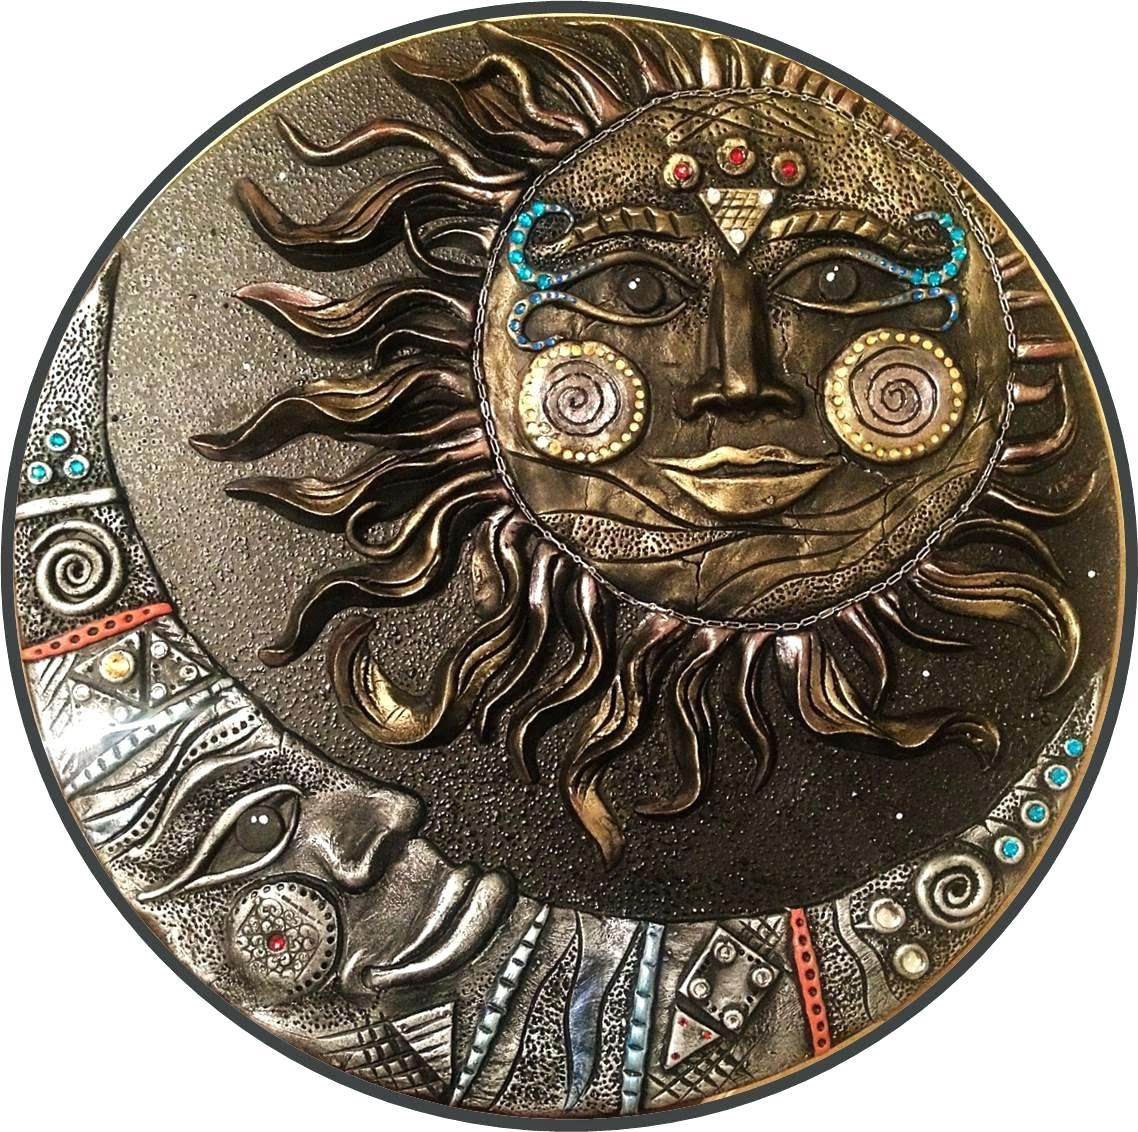 20 best sun and moon metal wall art wall art ideas. Black Bedroom Furniture Sets. Home Design Ideas